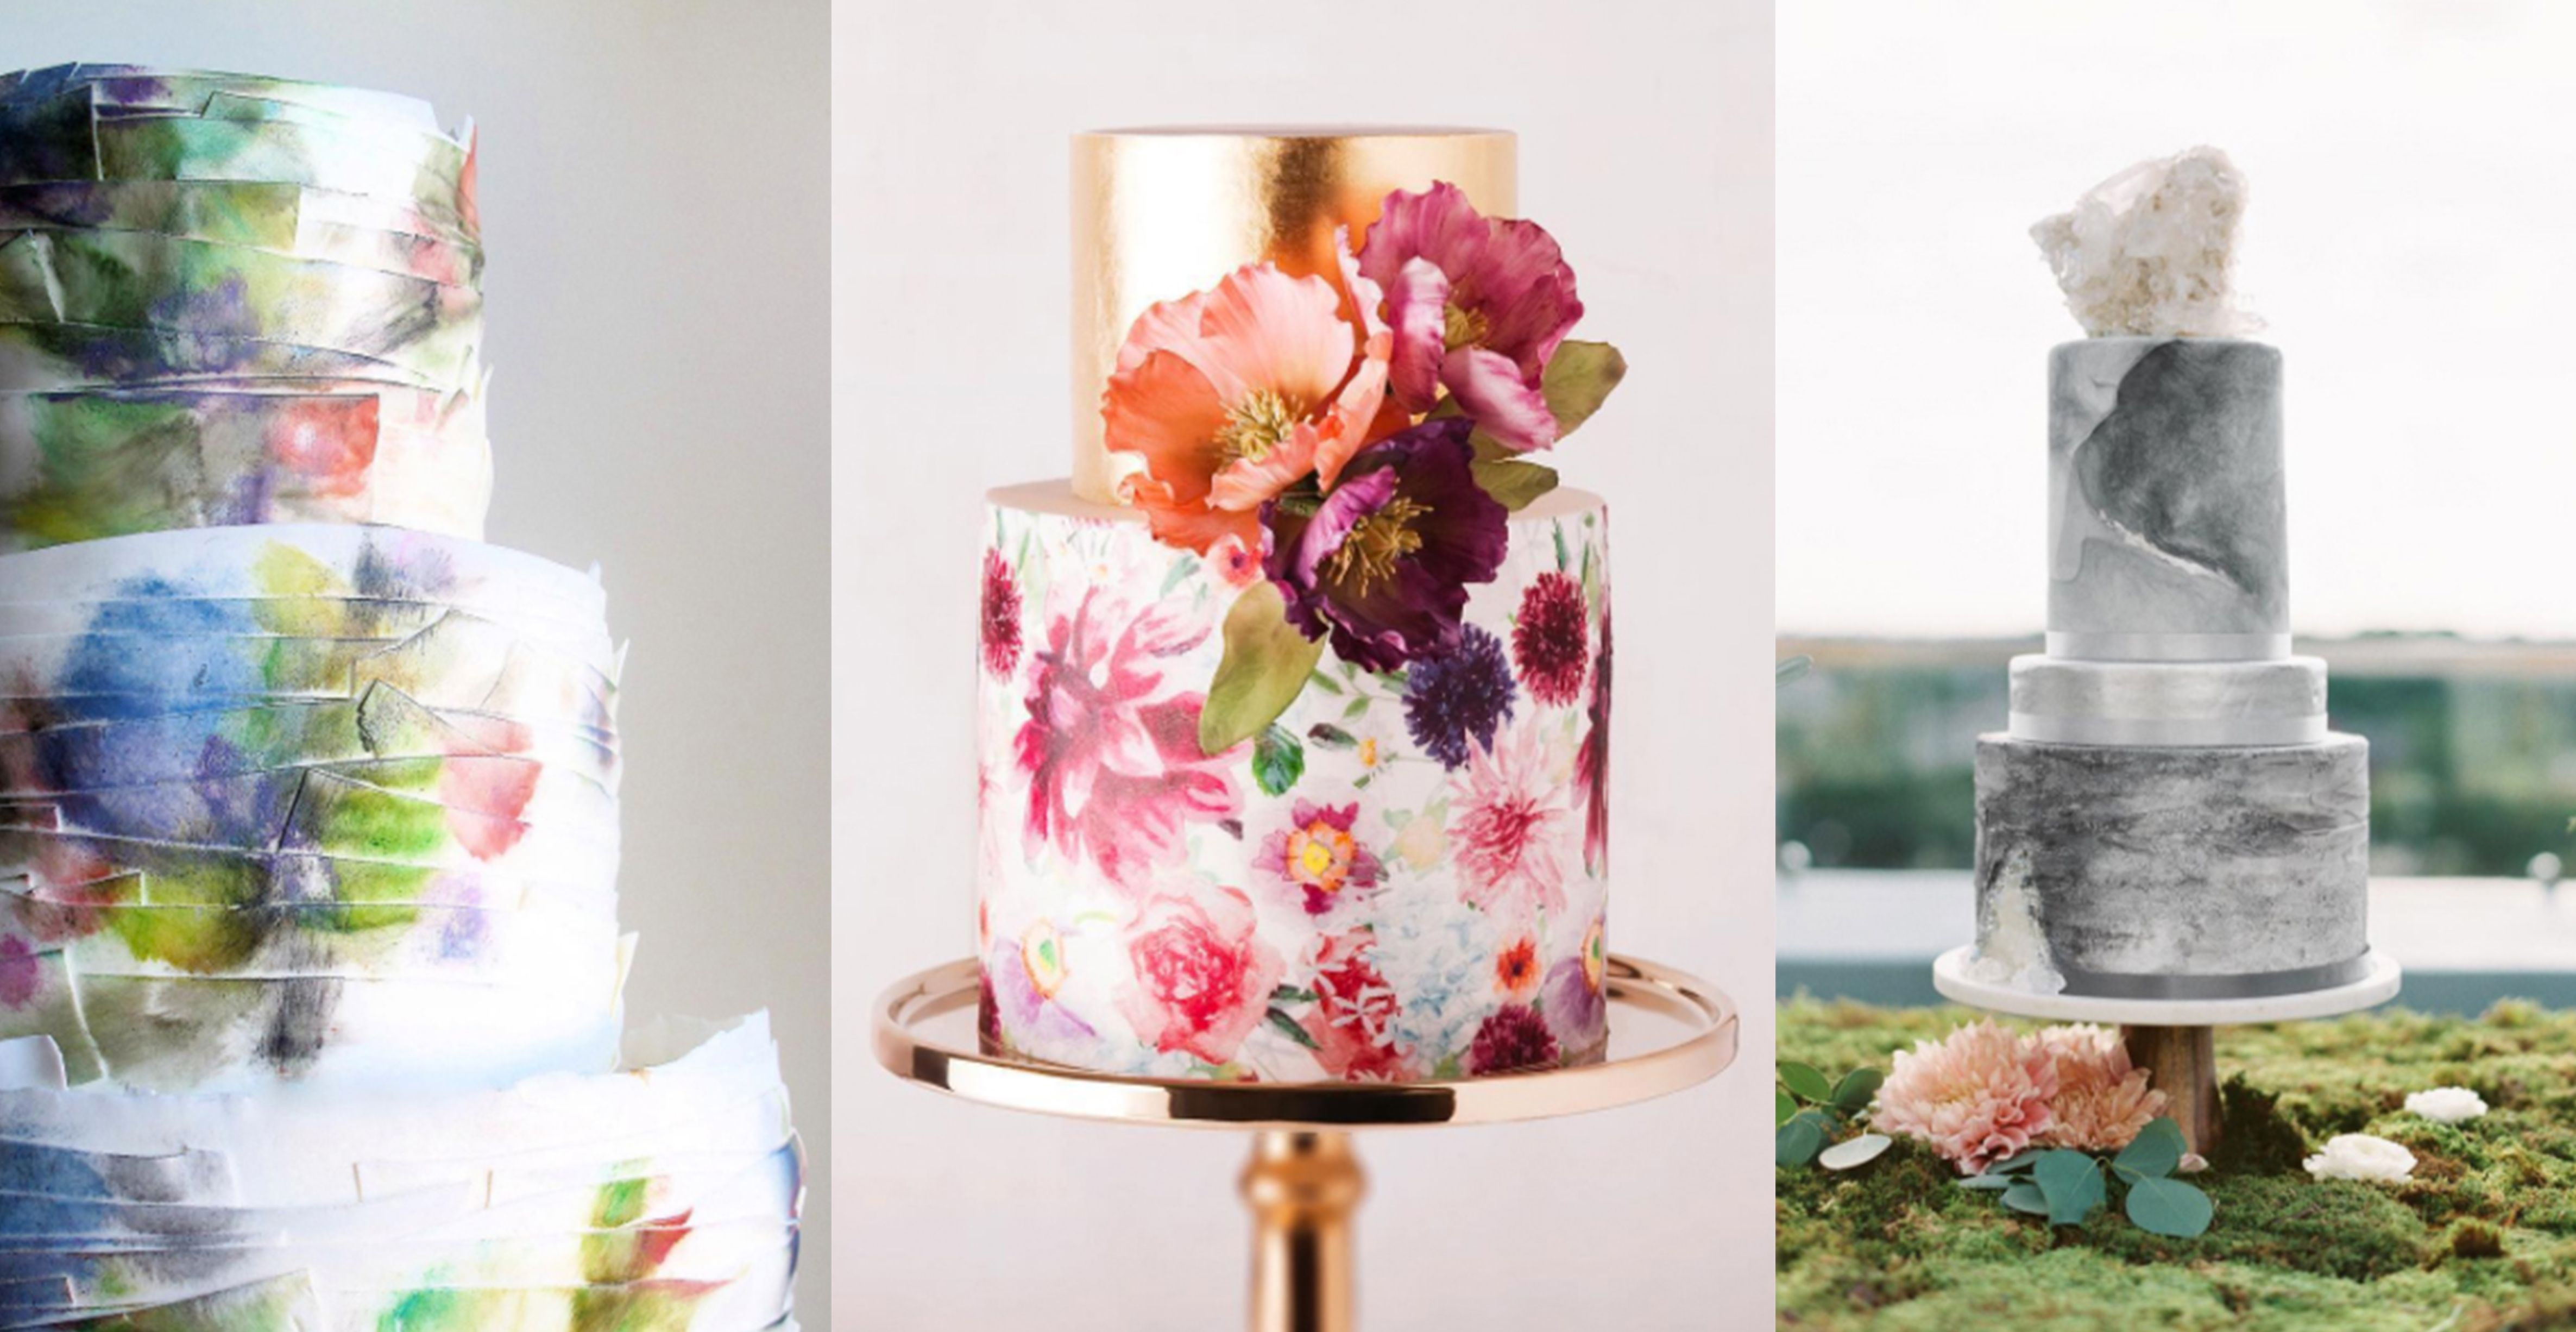 26 watercolor wedding cakes that will take your breath away 26 watercolor wedding cakes that will take your breath away watercolor cake is the dreamiest new wedding trend mightylinksfo